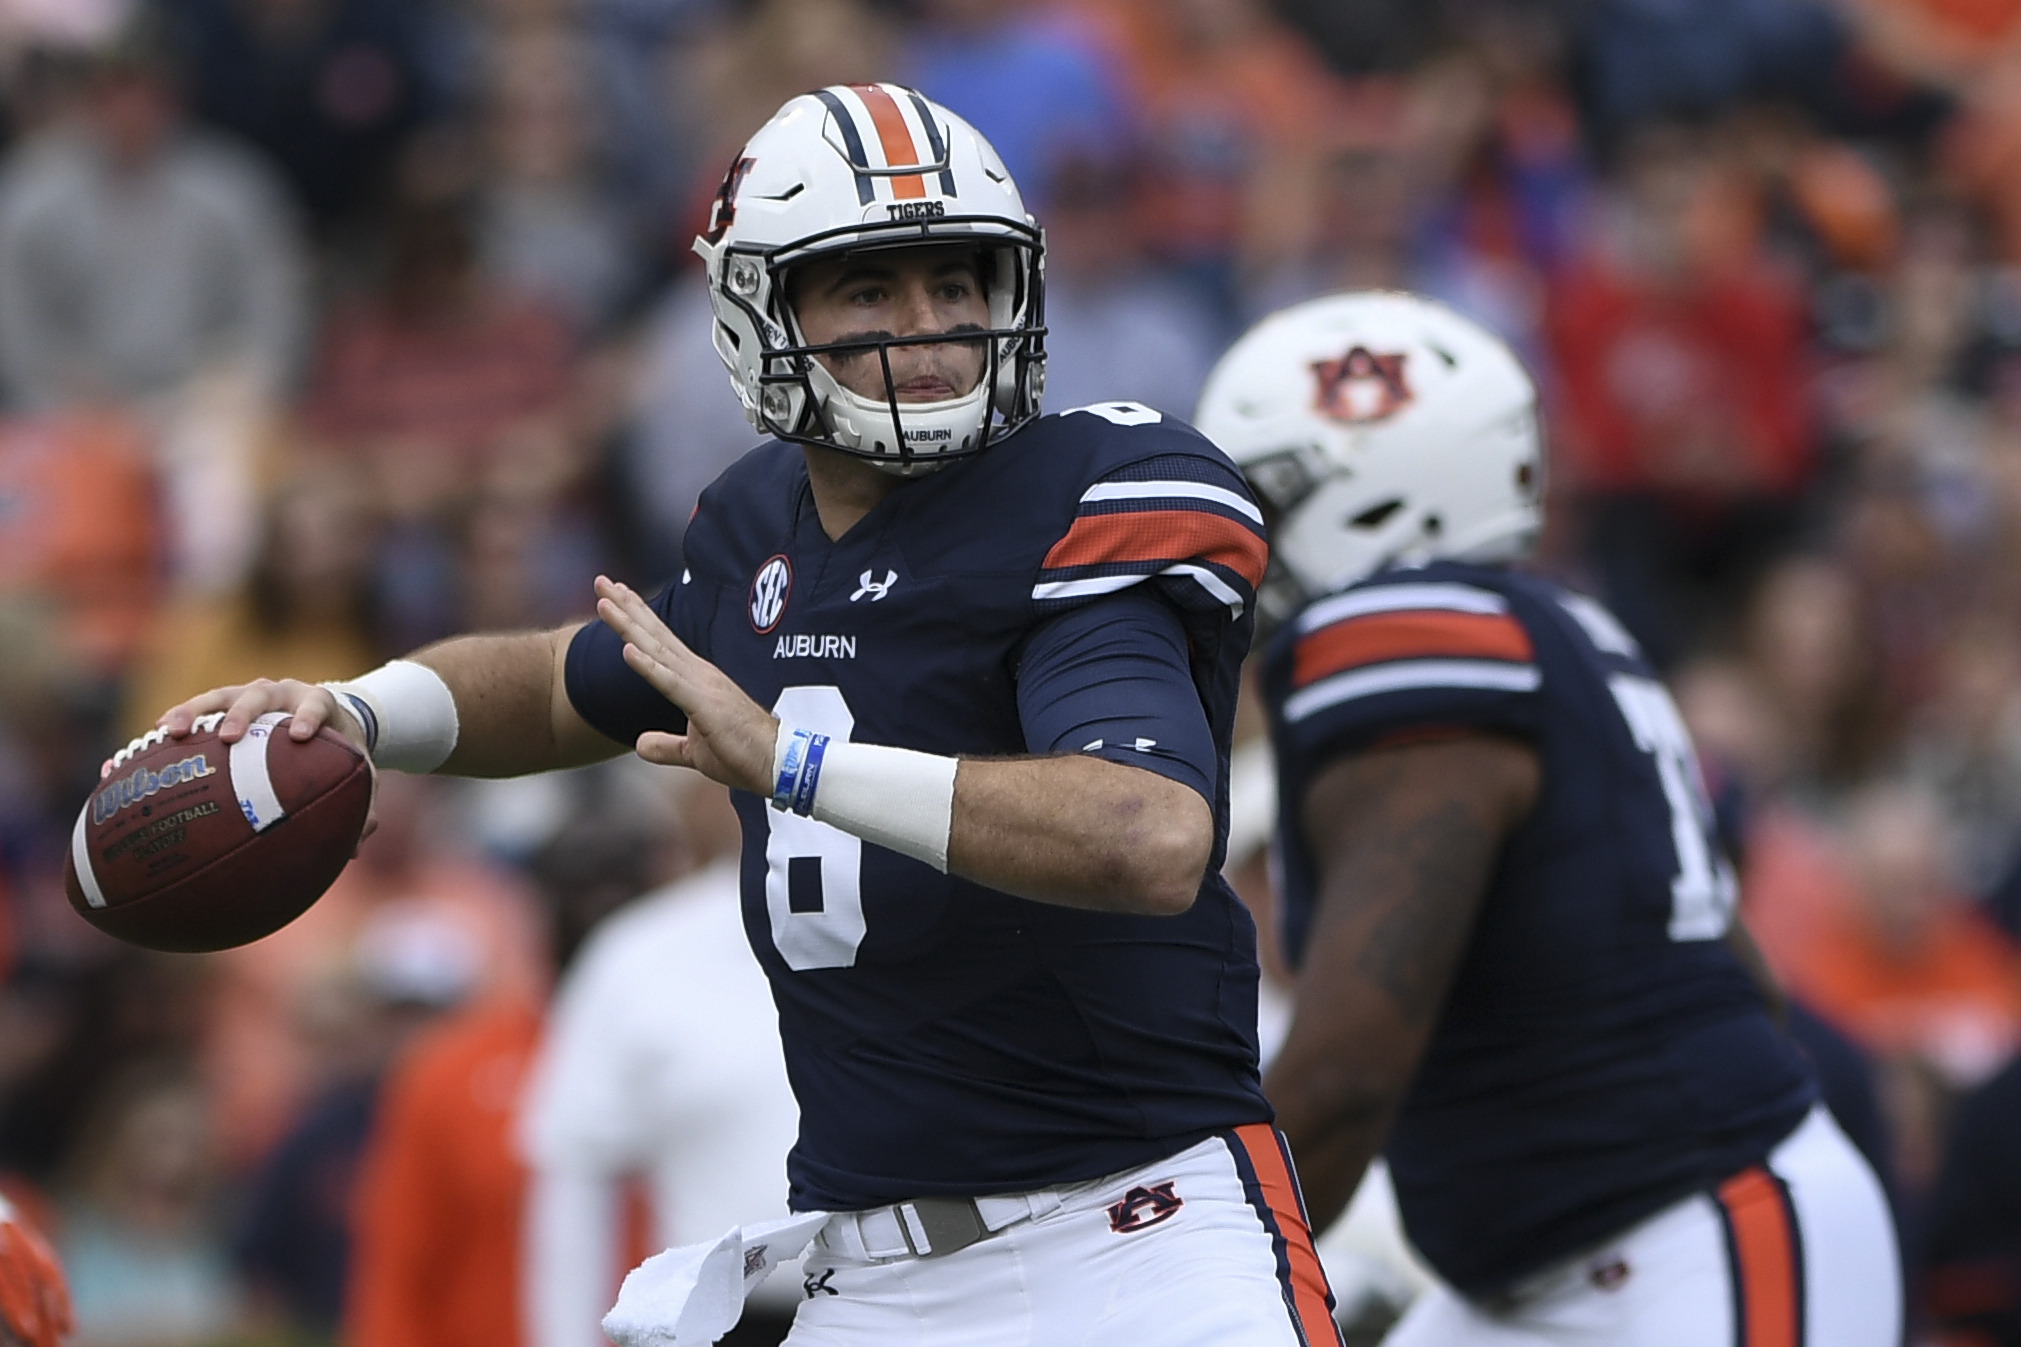 b3ba25f24a1 Through 12 games, Auburn quarterback Jarrett Stidham leads the SEC in  completion percentage (68.5